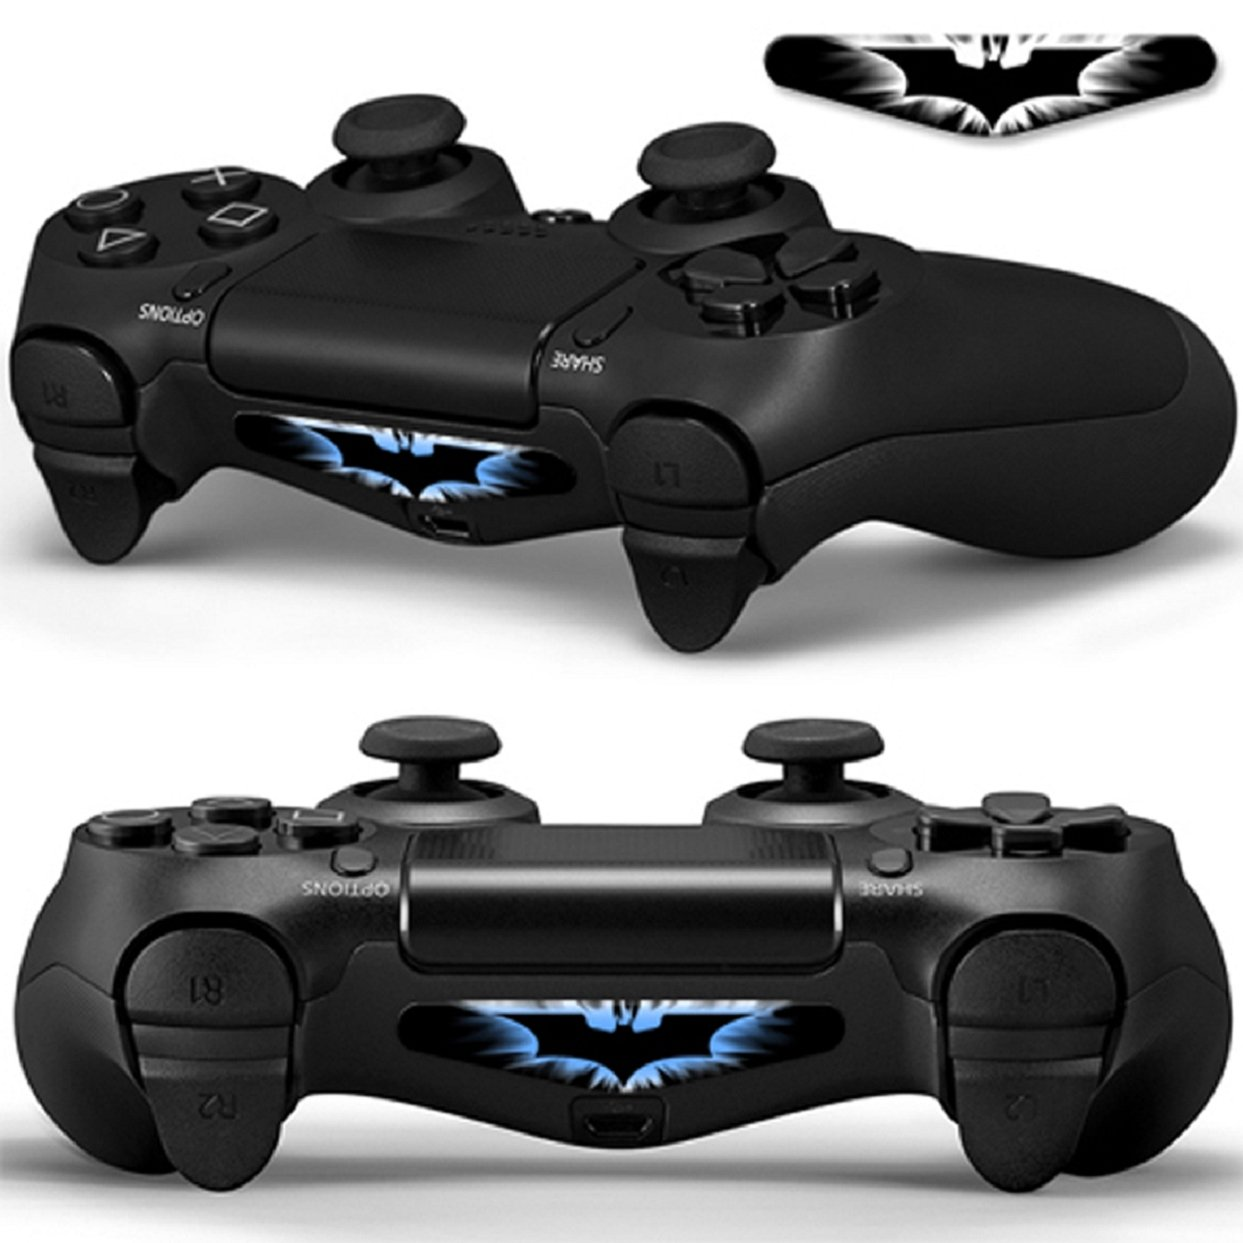 Amazon coromose game controller light bar sticker film for amazon coromose game controller light bar sticker film for ps4 playstation 4 i cell phones accessories aloadofball